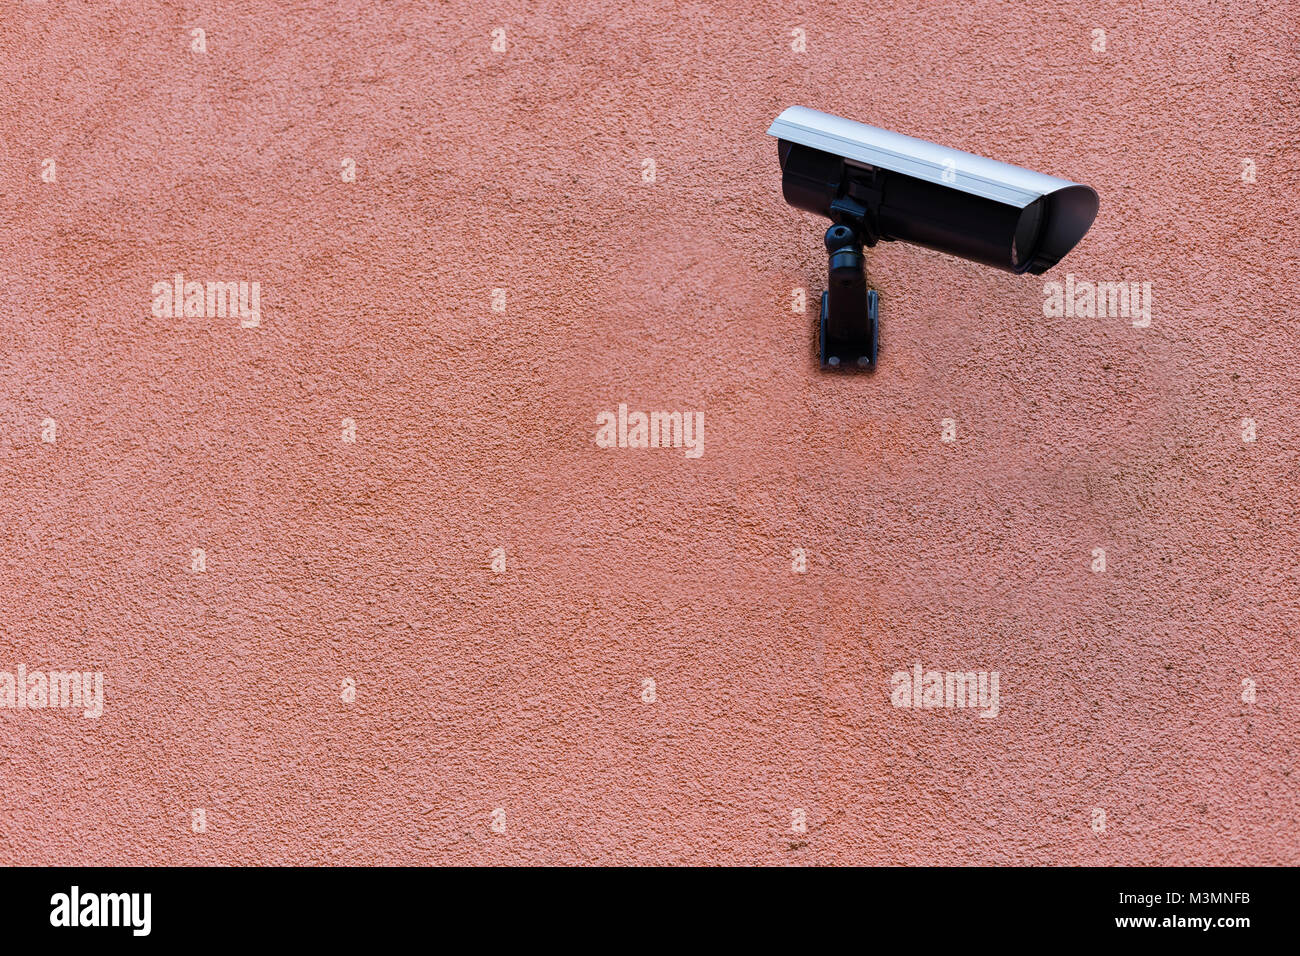 Surveillance observing camera on a orange red wall in Karlsruhe, Germany - Stock Image